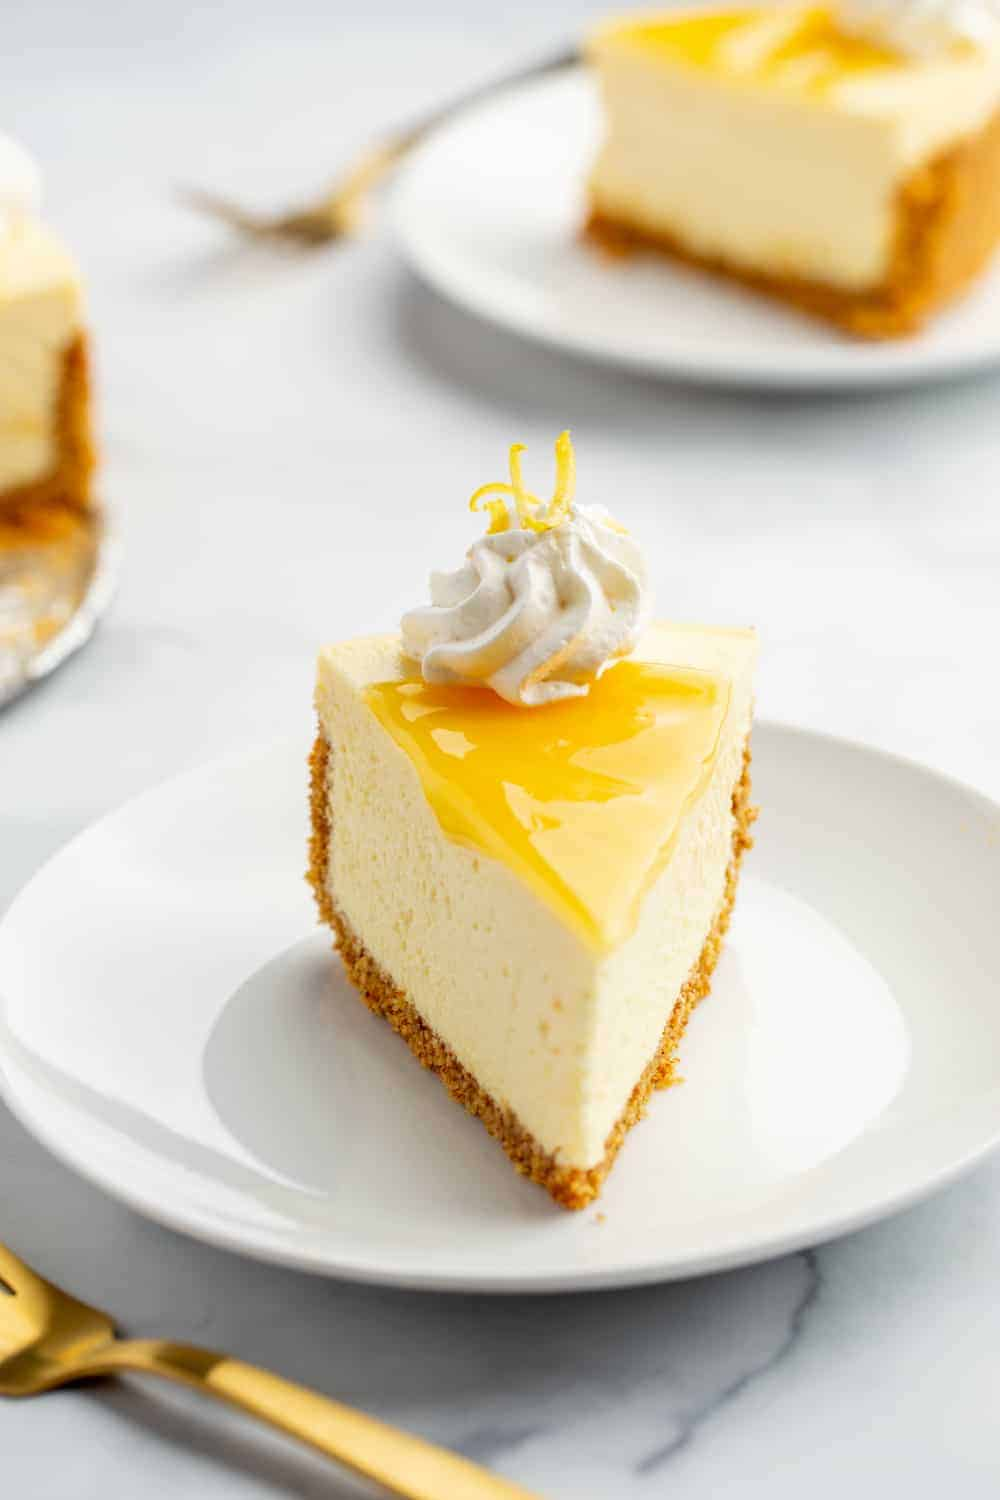 Front view of a slice of lemon cheesecake topped with lemon curd and whipped cream